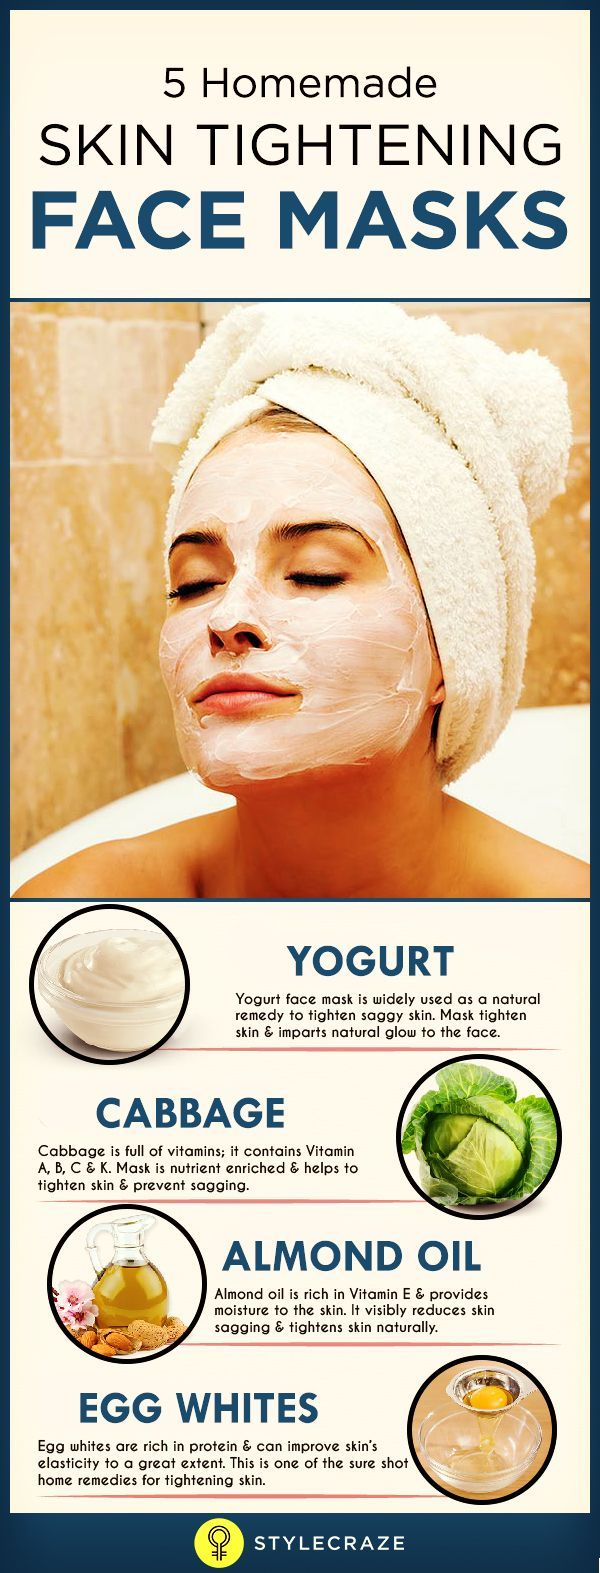 One solution is to opt for skin tightening masks. Below are a few easy skin tightening mask recipes which can be made easily at your own home. Use any of these face tightening masks at least once a week for younger looking skin.